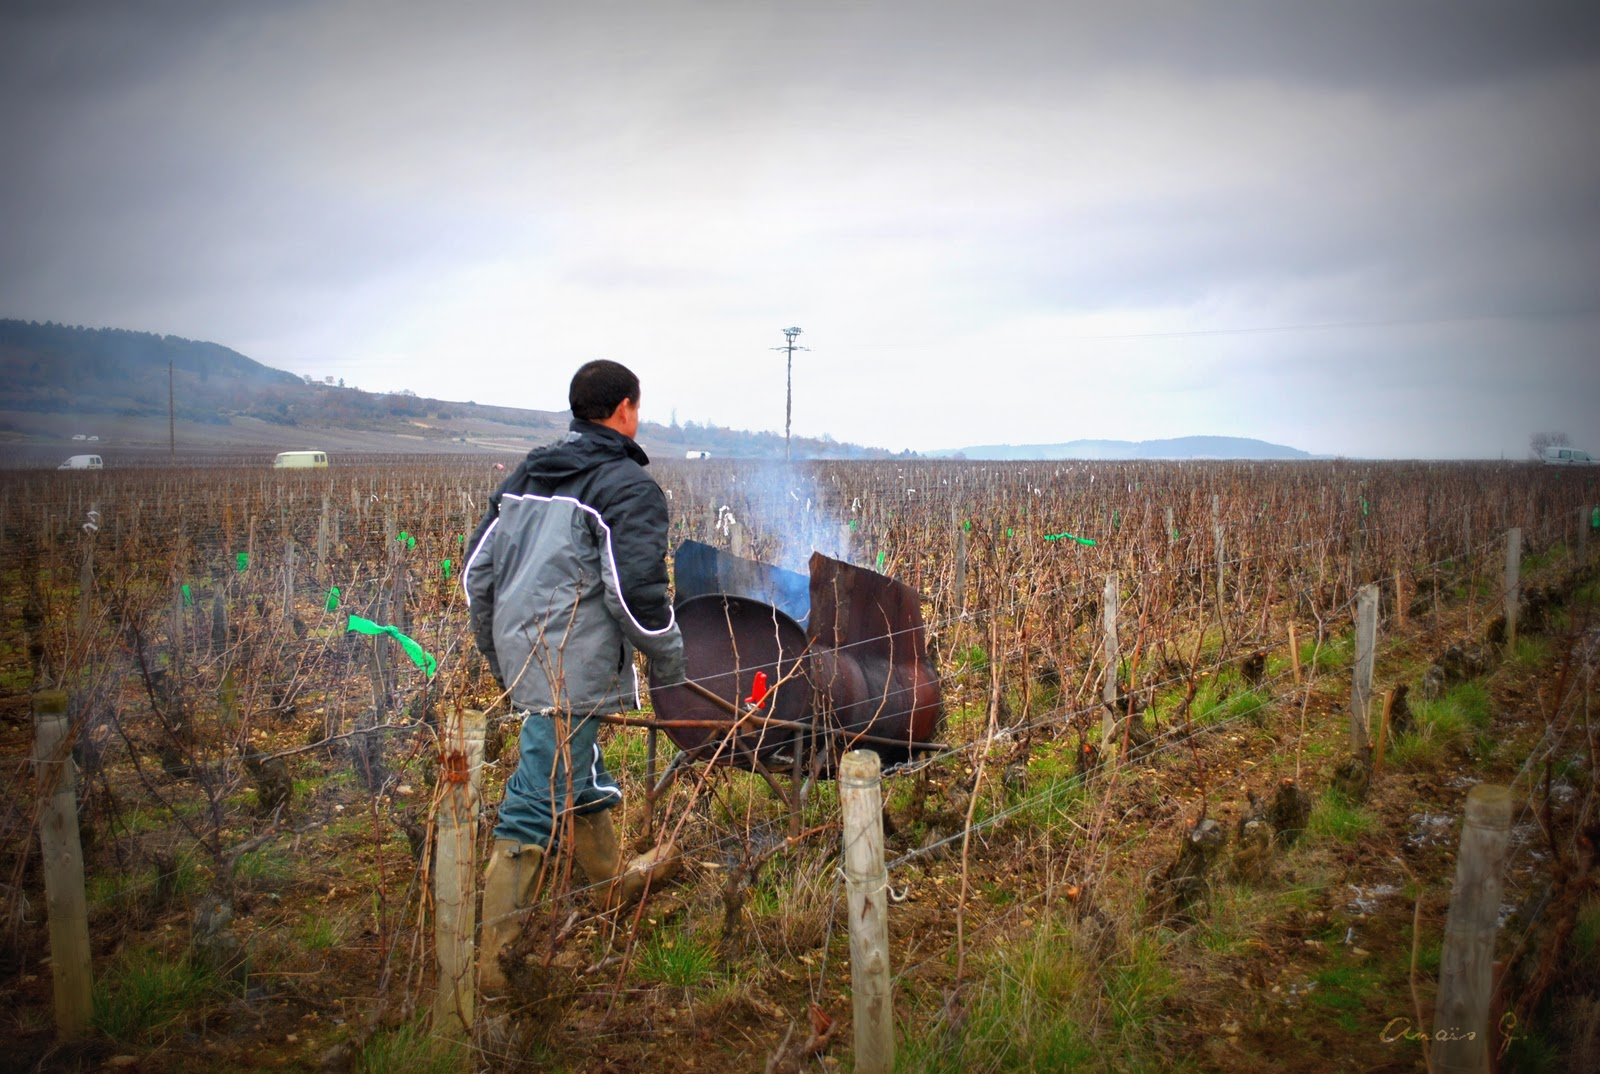 Burning vine prunings already during the dormant pruning activity